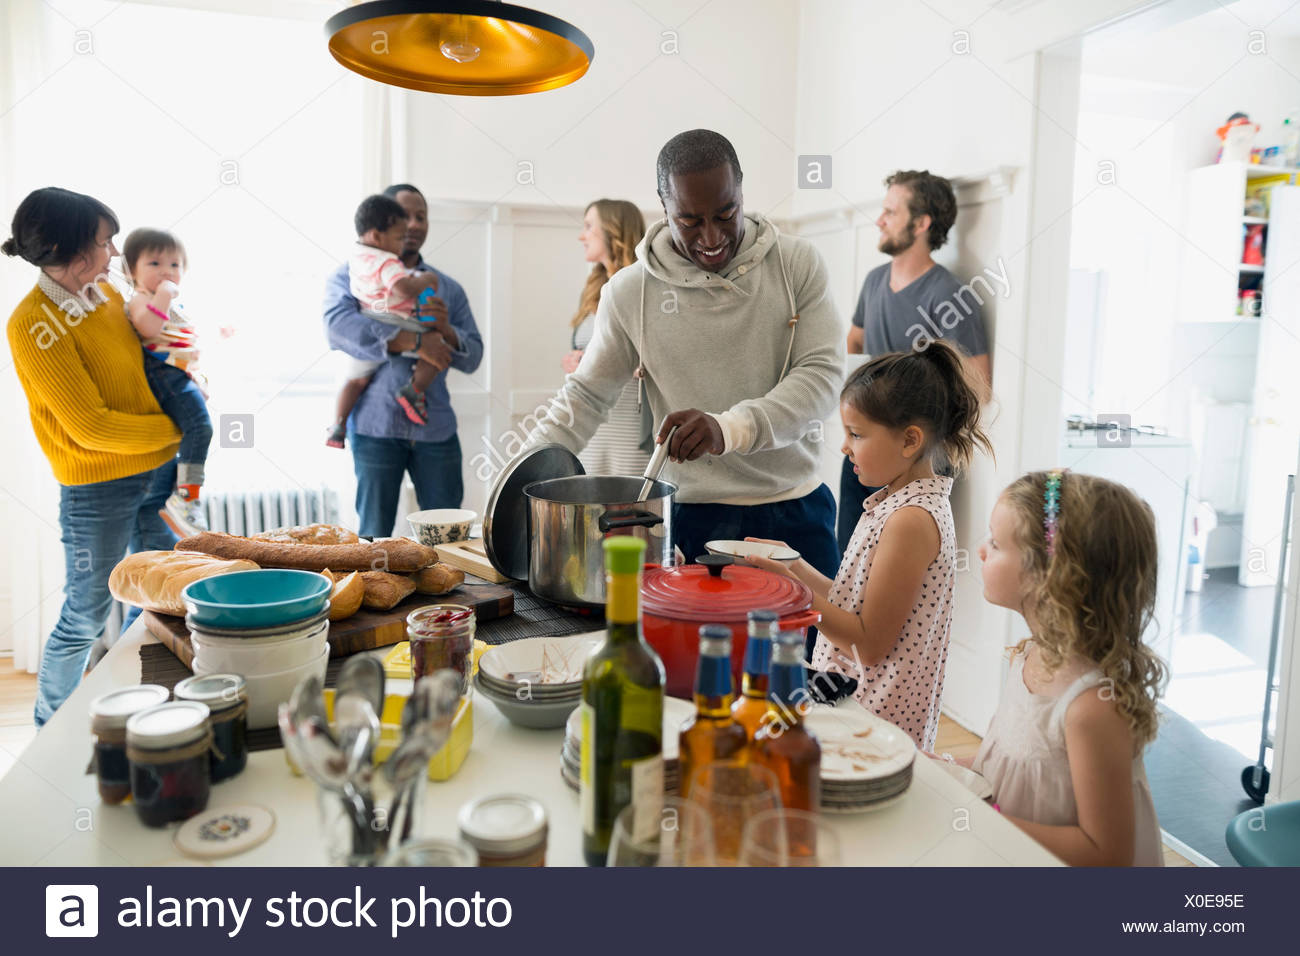 Families gathering for lunch in kitchen - Stock Image